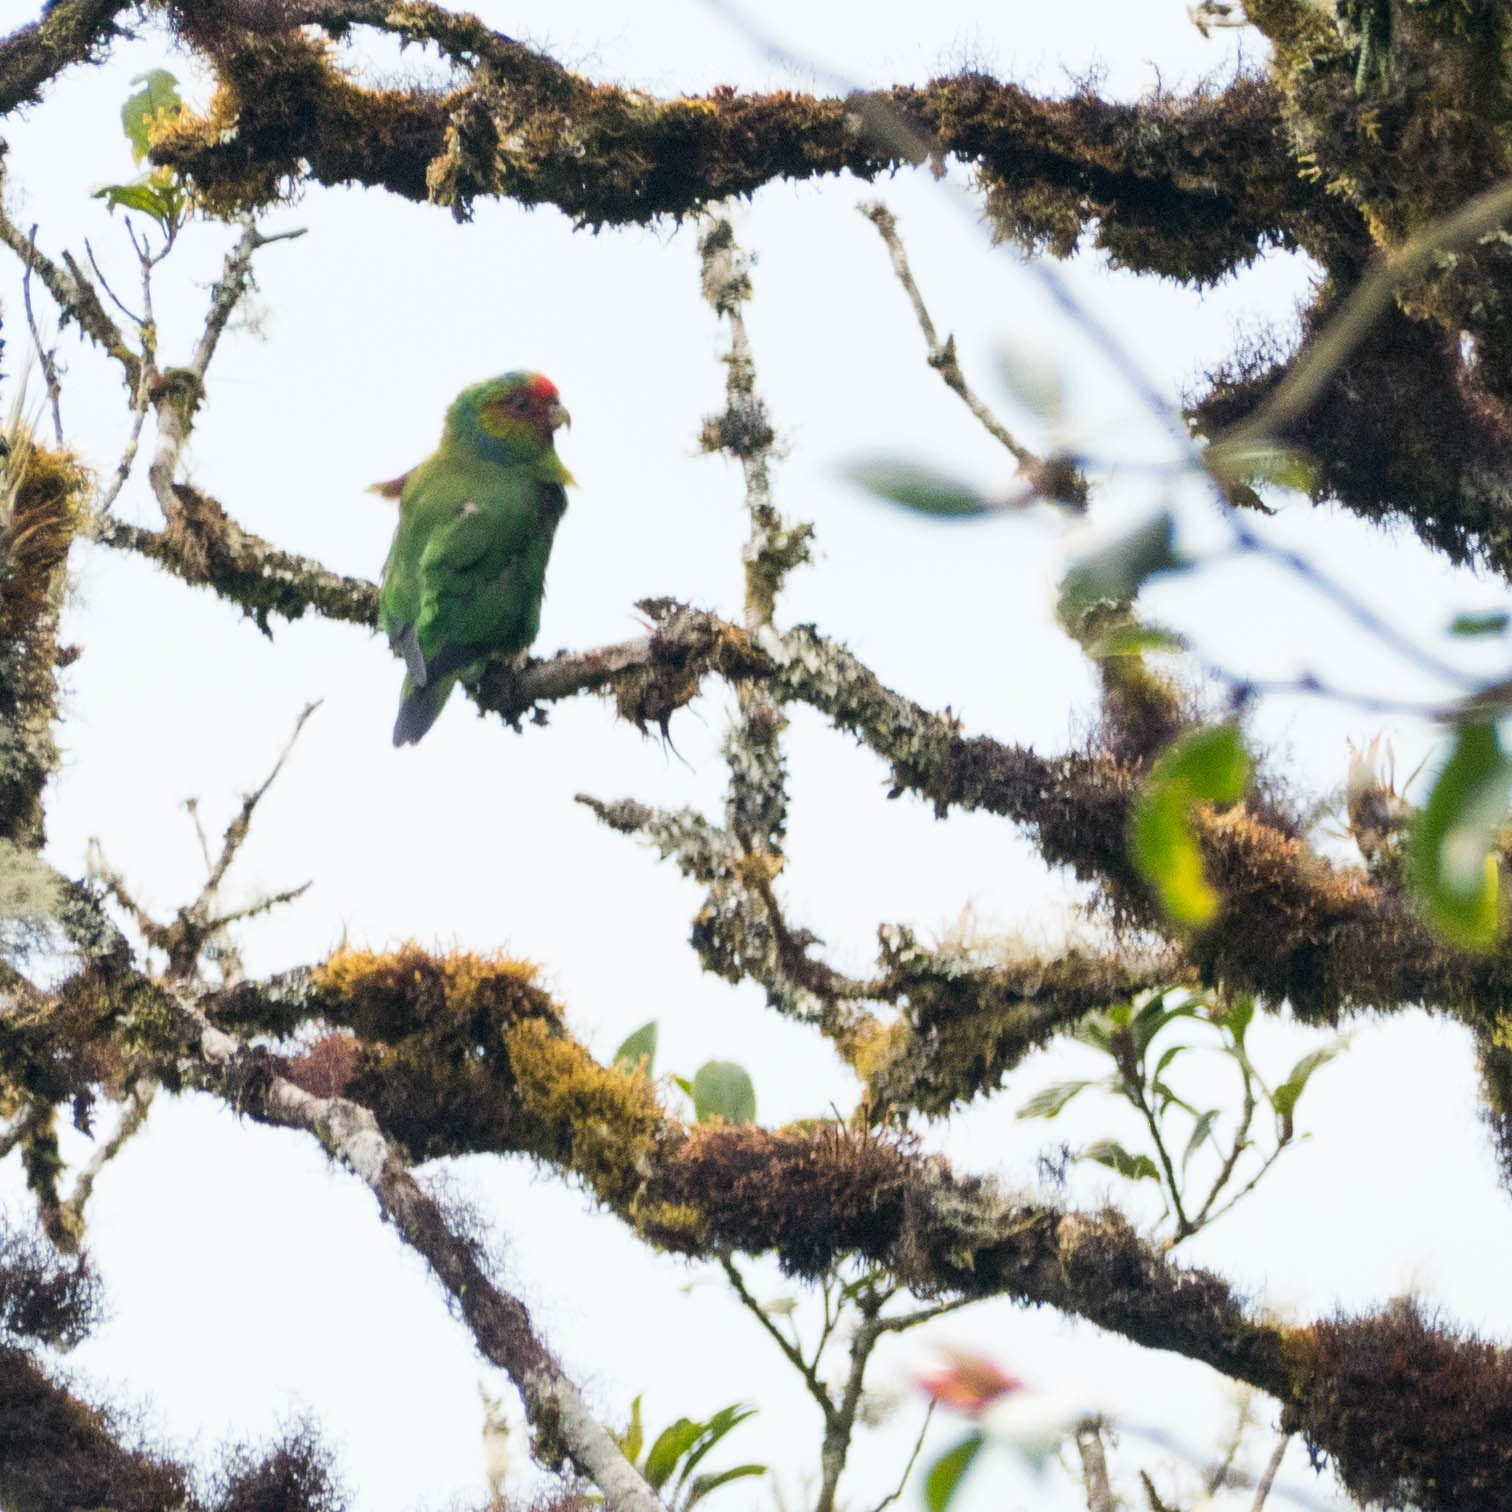 Image of Red-faced Parrot